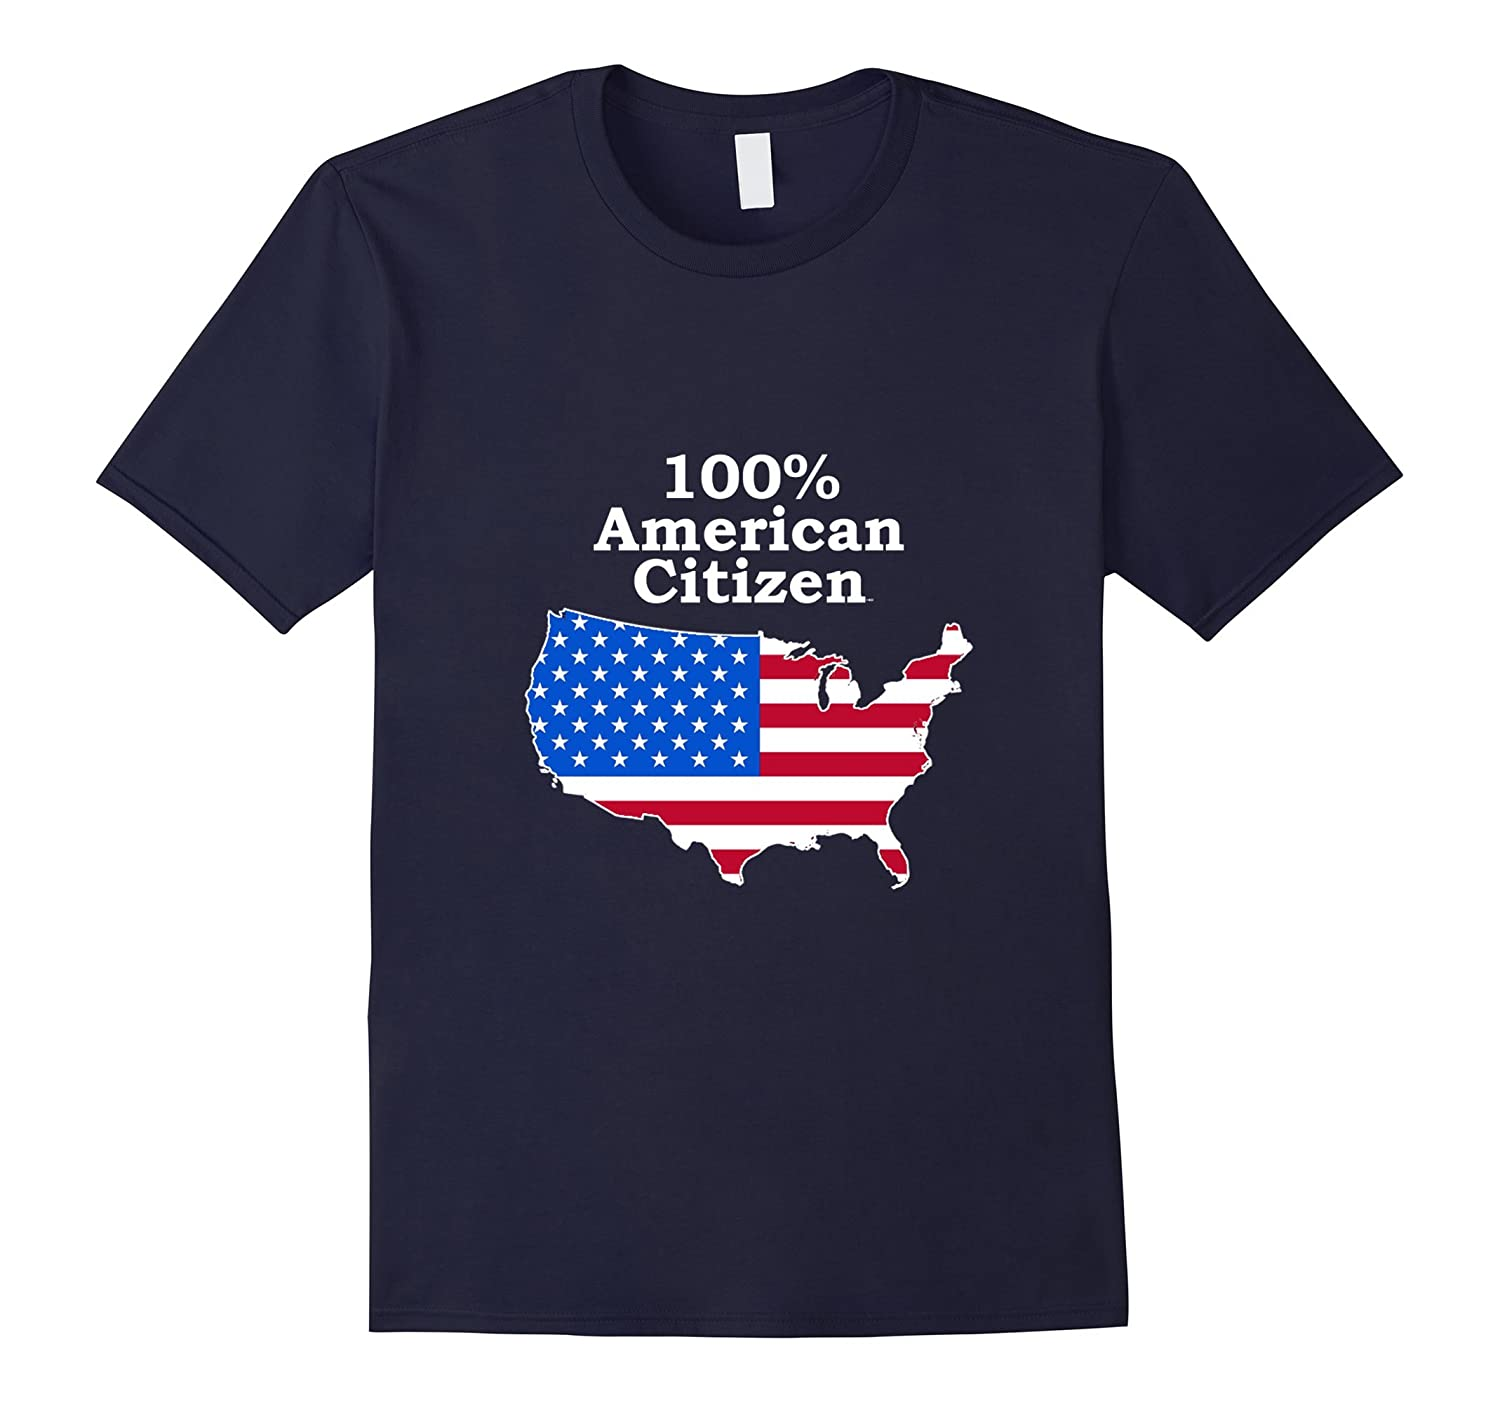 100% American Citizen Tshirt Citizenship Vote Election Proud-BN